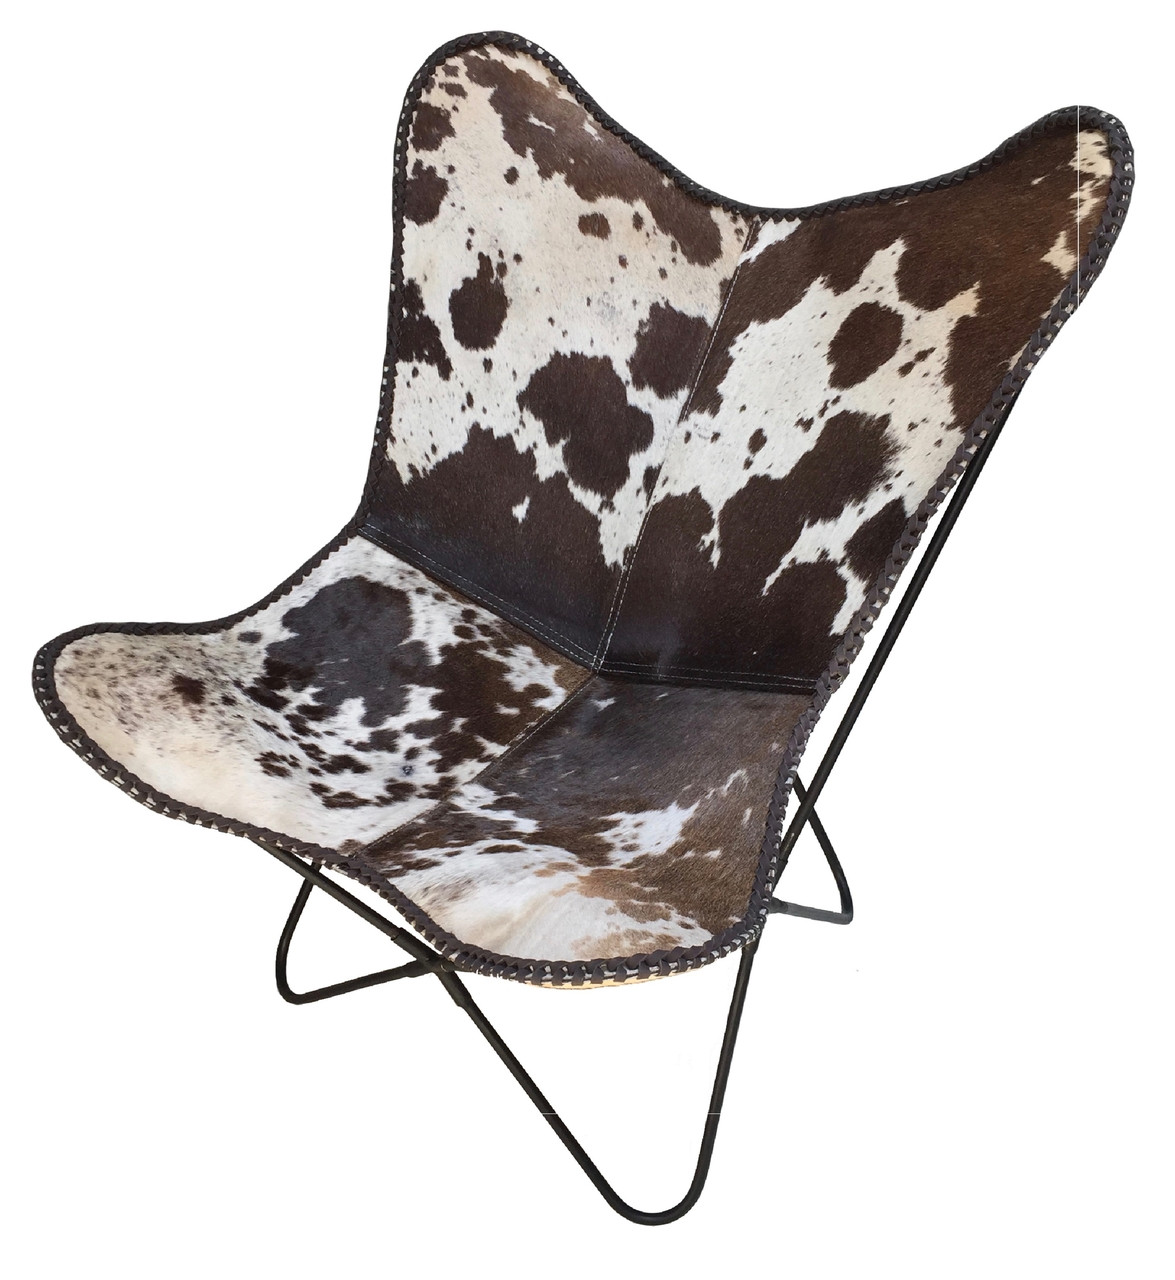 Surprising Graf Butterfly Chair In Brown And White Cowhide On Sale Squirreltailoven Fun Painted Chair Ideas Images Squirreltailovenorg